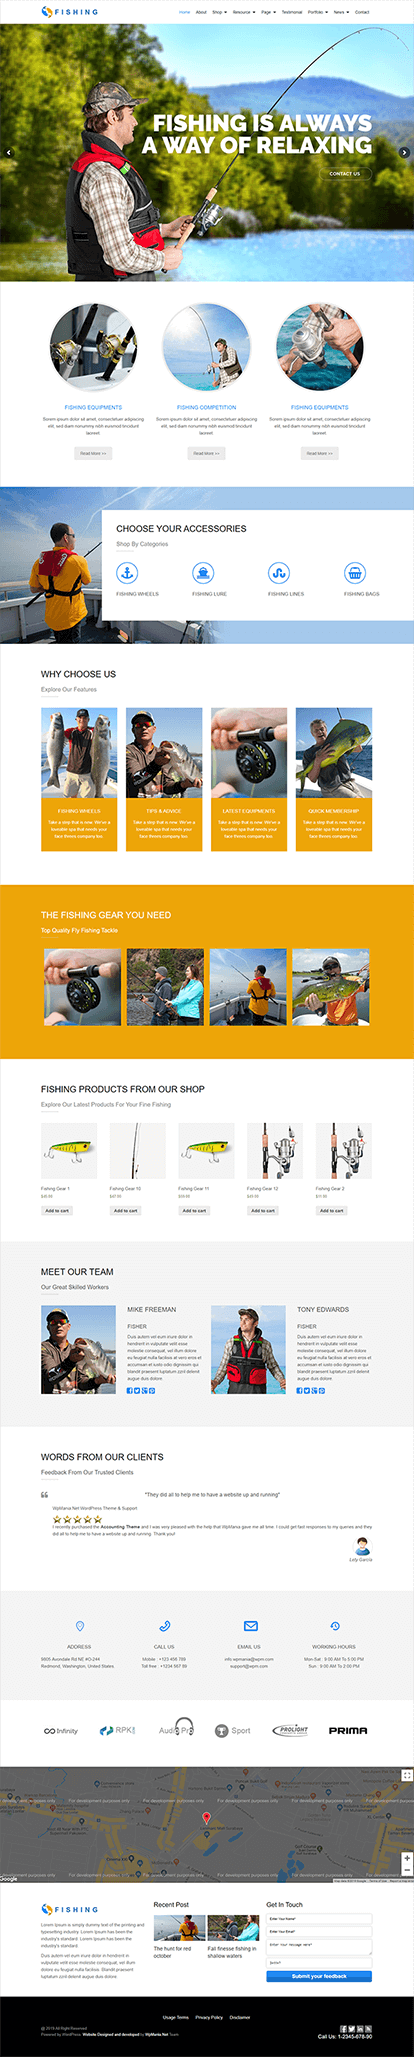 Fishing WORDPRESS THEME Full Demo